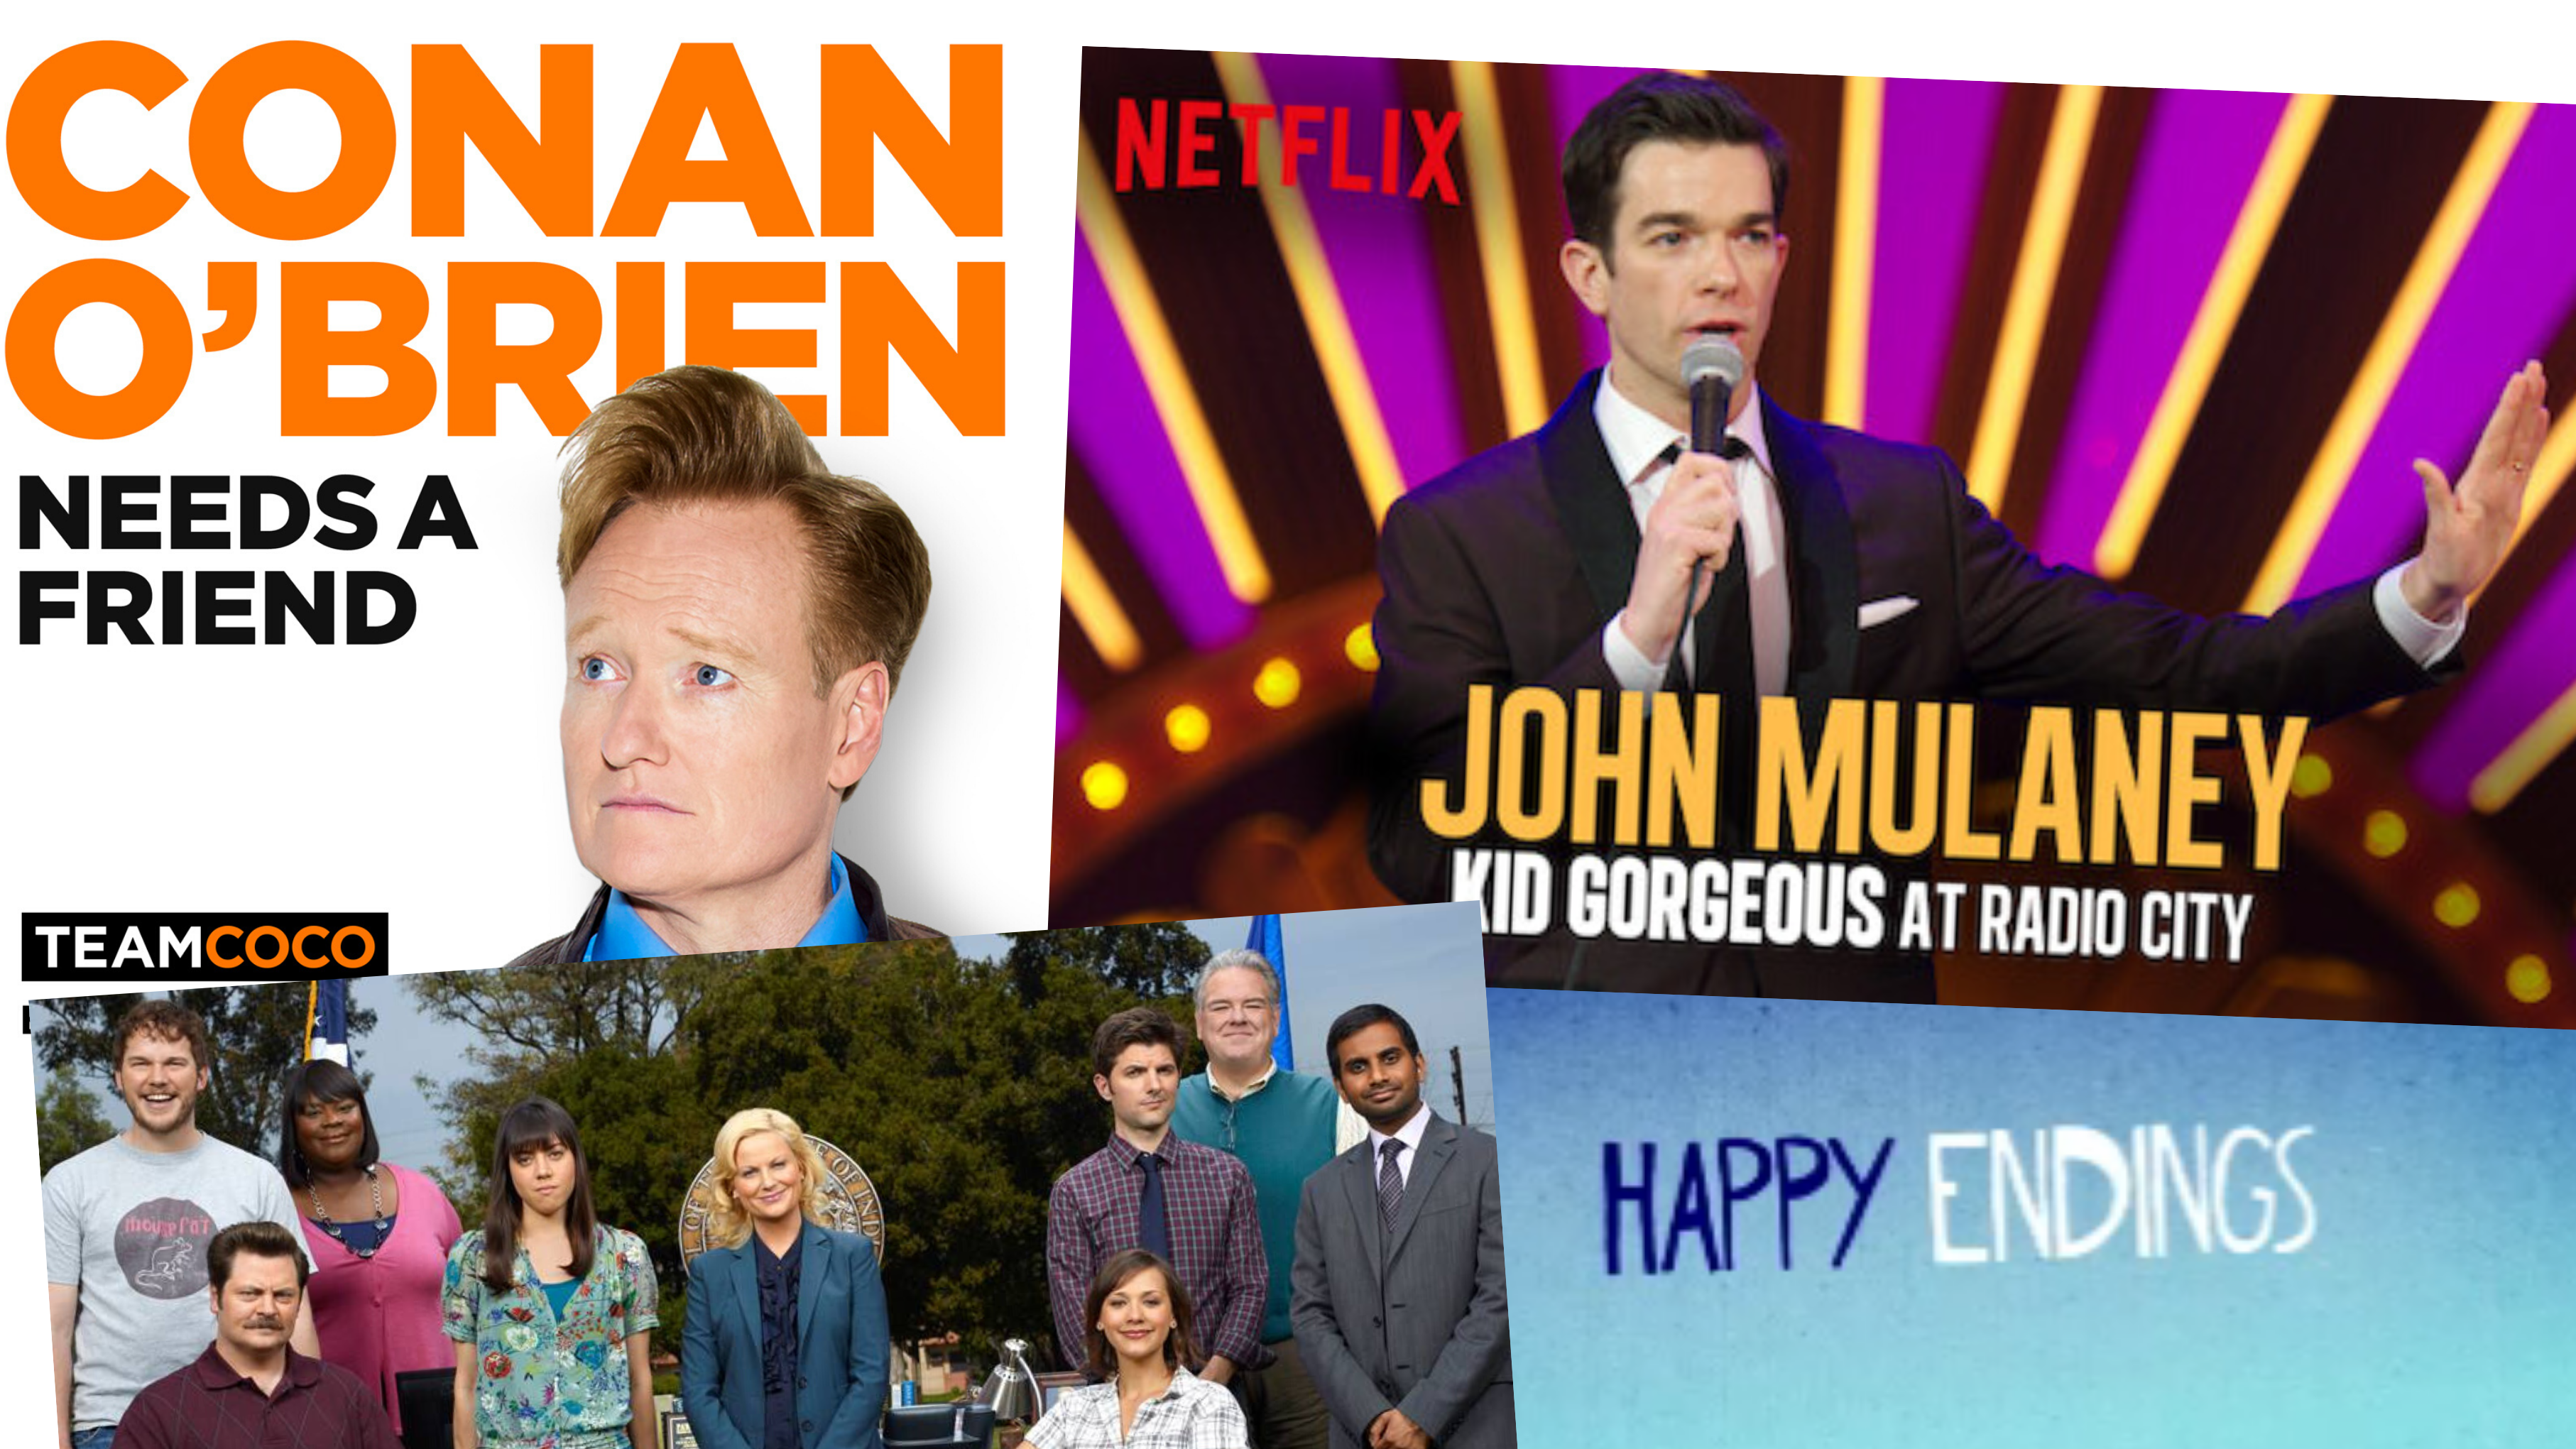 Conan O'Brien Needs a Friend podcast, John Mulaney Kid Gorgeous at radio City, Parks and Recreation, Happy Endings